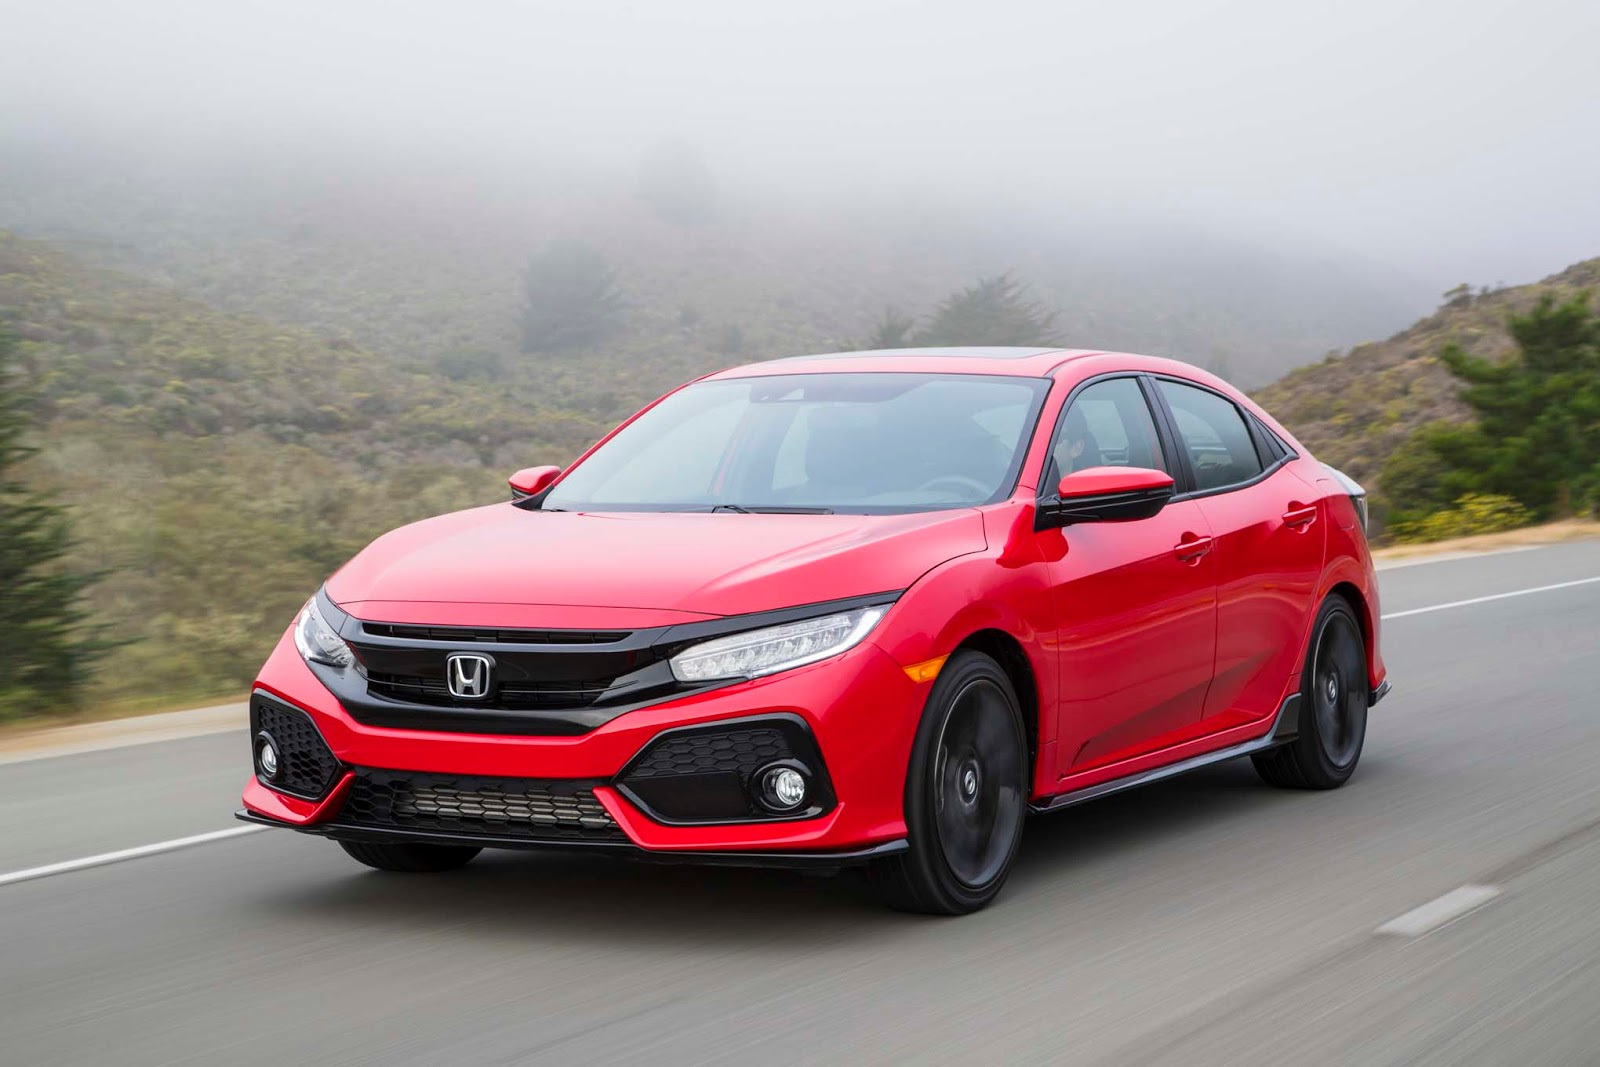 The 2017 Honda Civic Is Offered In Three Body Variations Sedan Coupe And Re Emerged Hatchback A Well Known Esteemed Manufacturer